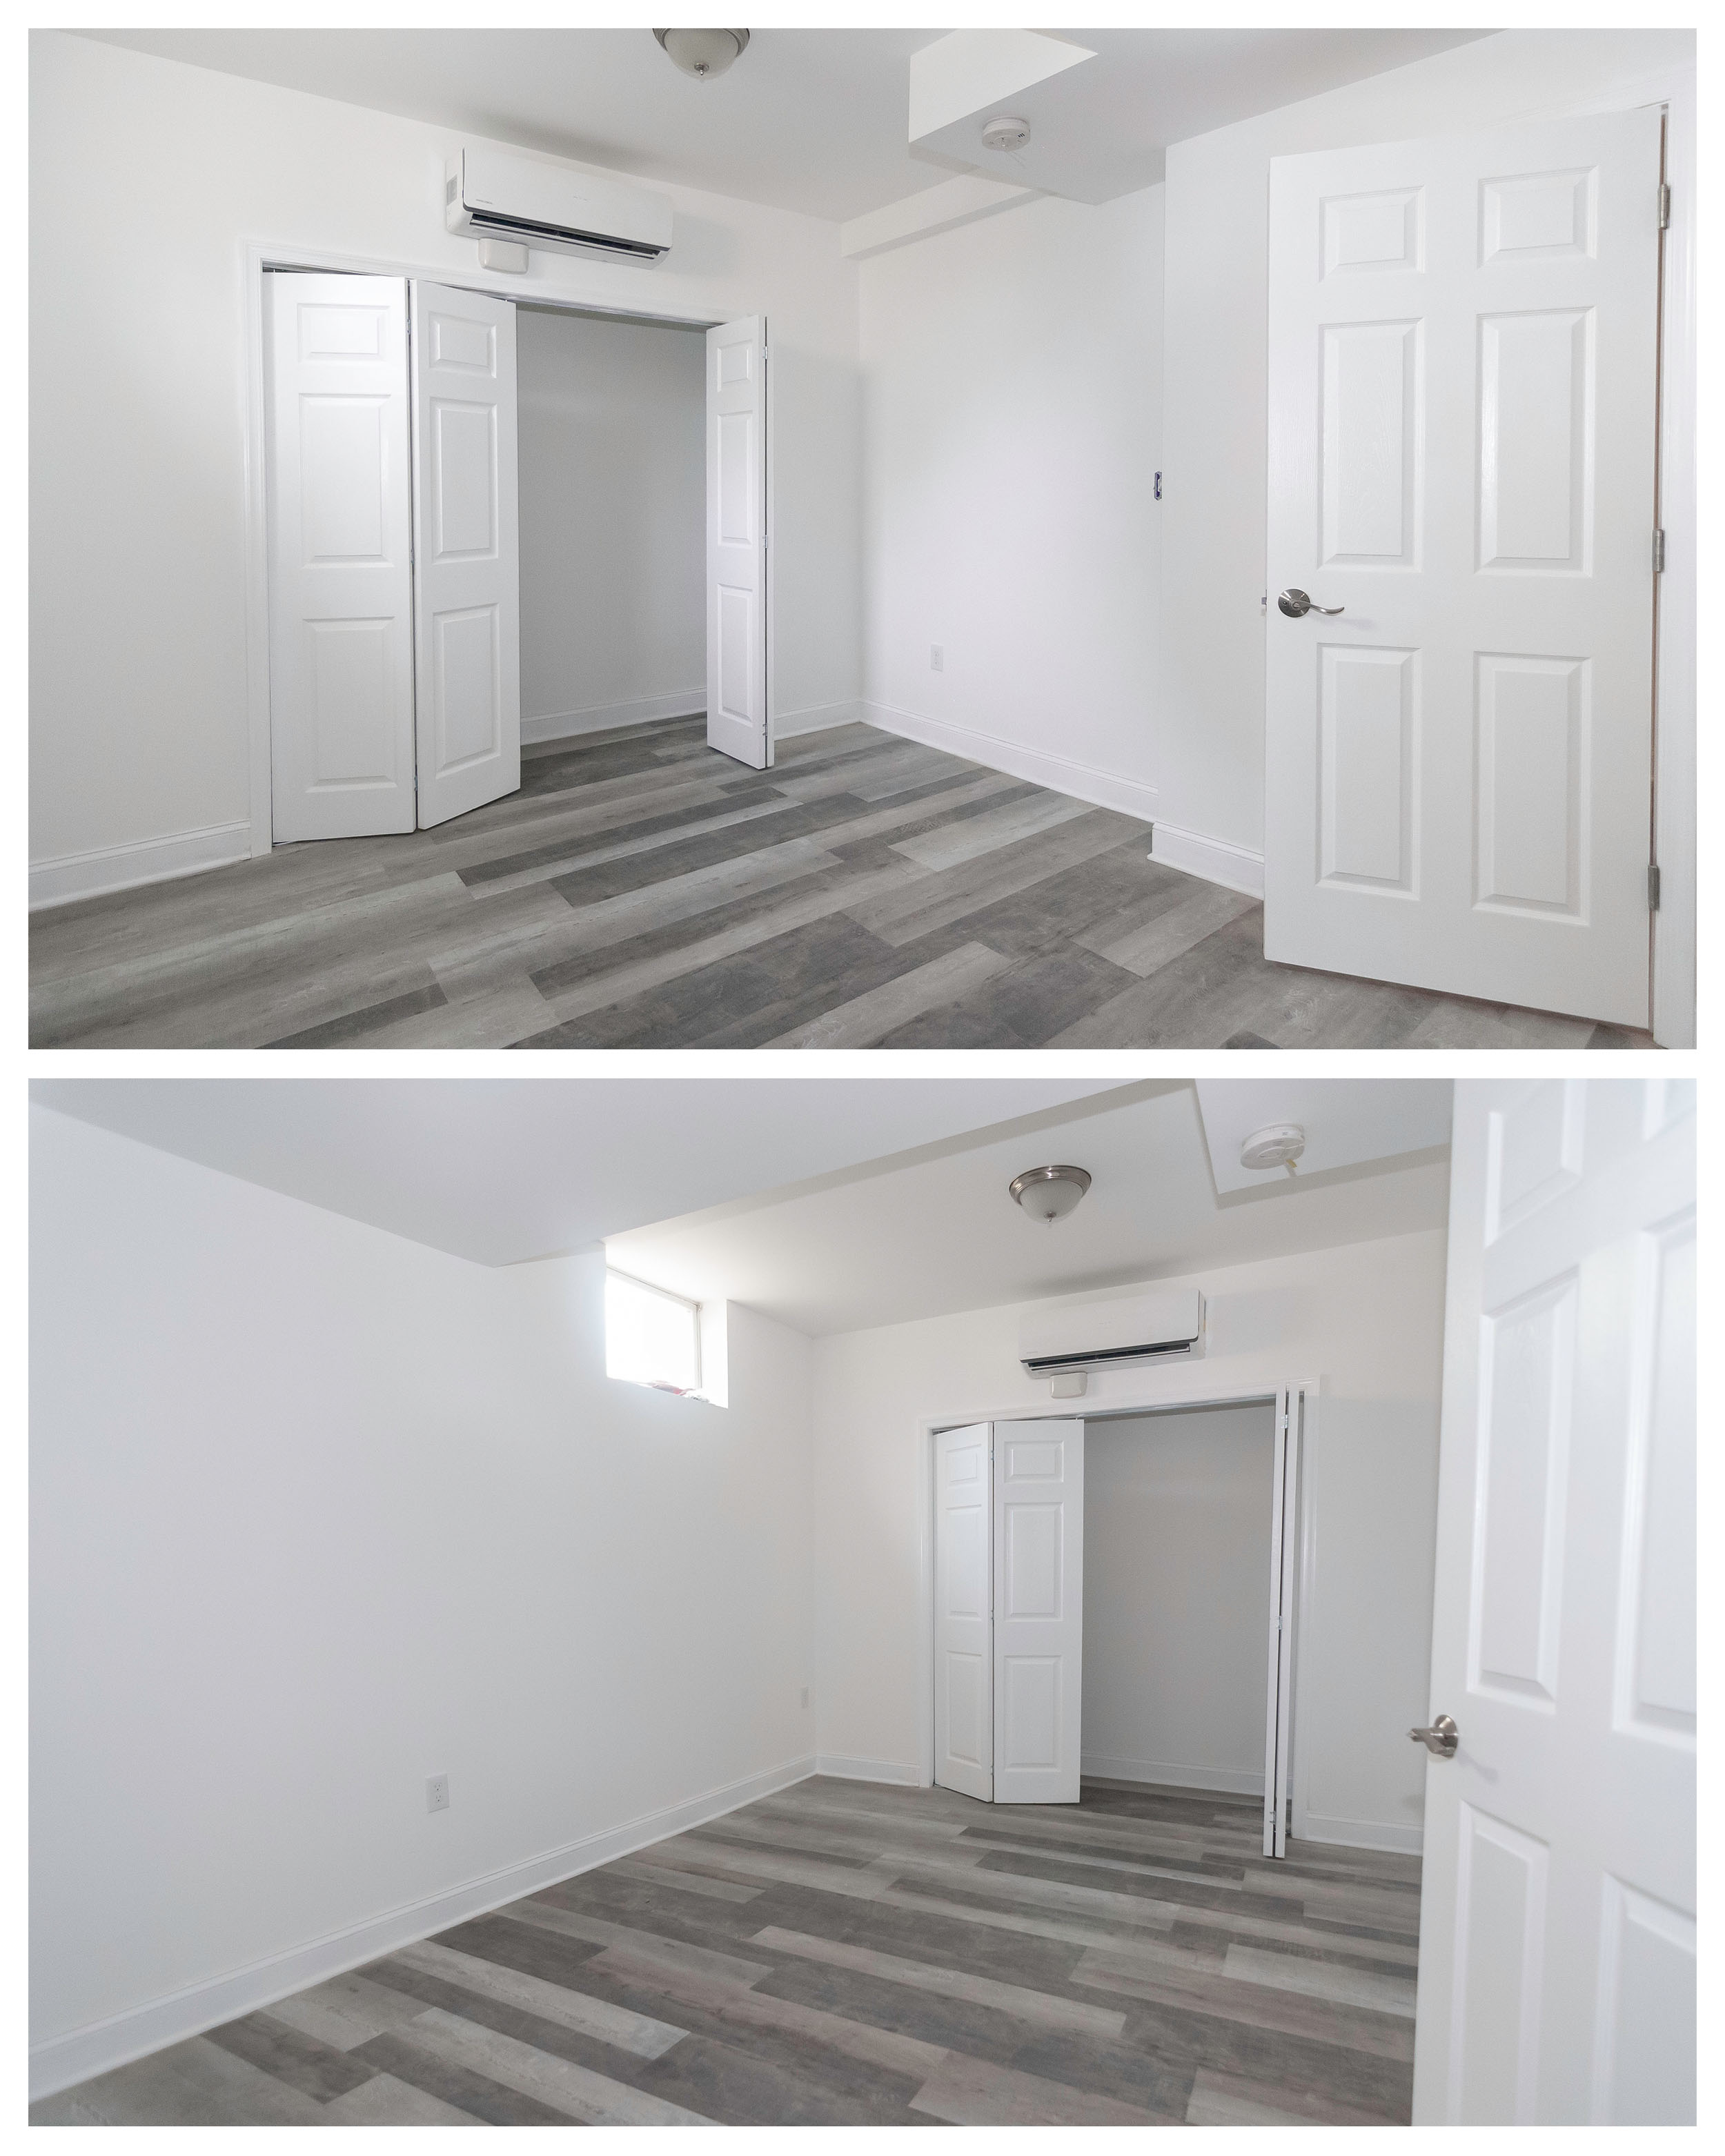 6 Harness Bedroom Comparison.jpg